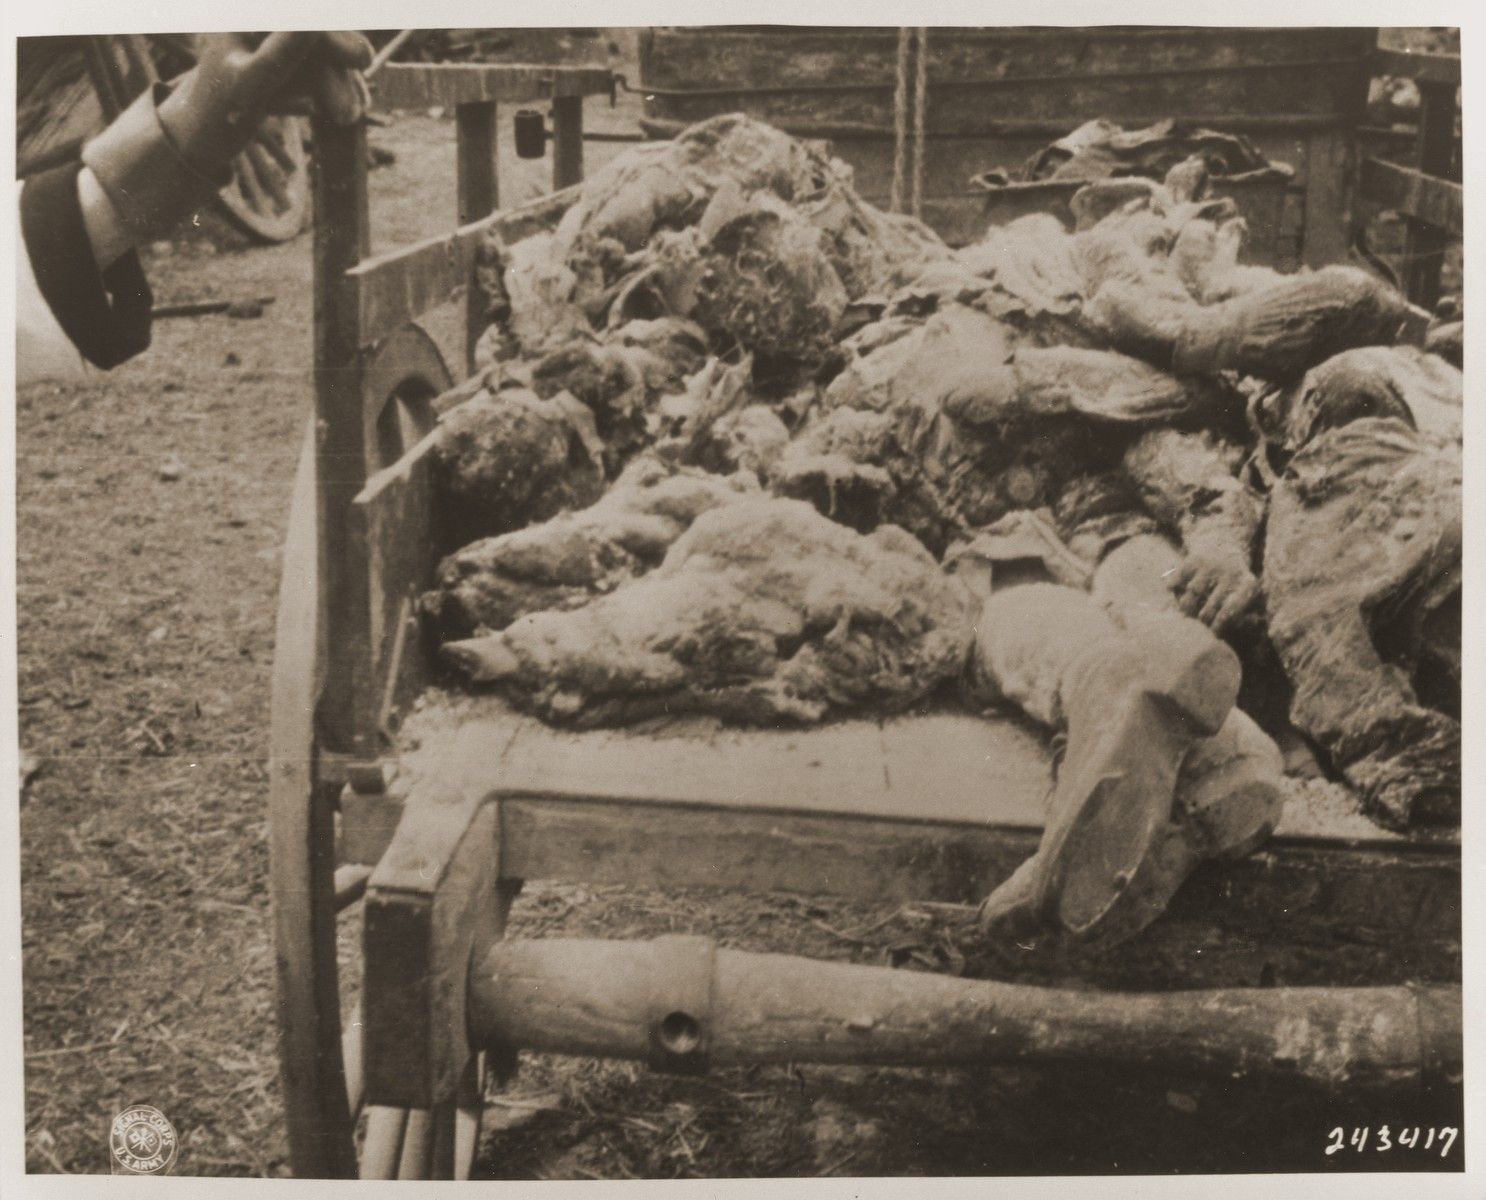 A wagon bearing the remains of civilians exhumed from a mass grave in Oradour.  The victims were killed by the SS in Oradour on June 10, 1944.